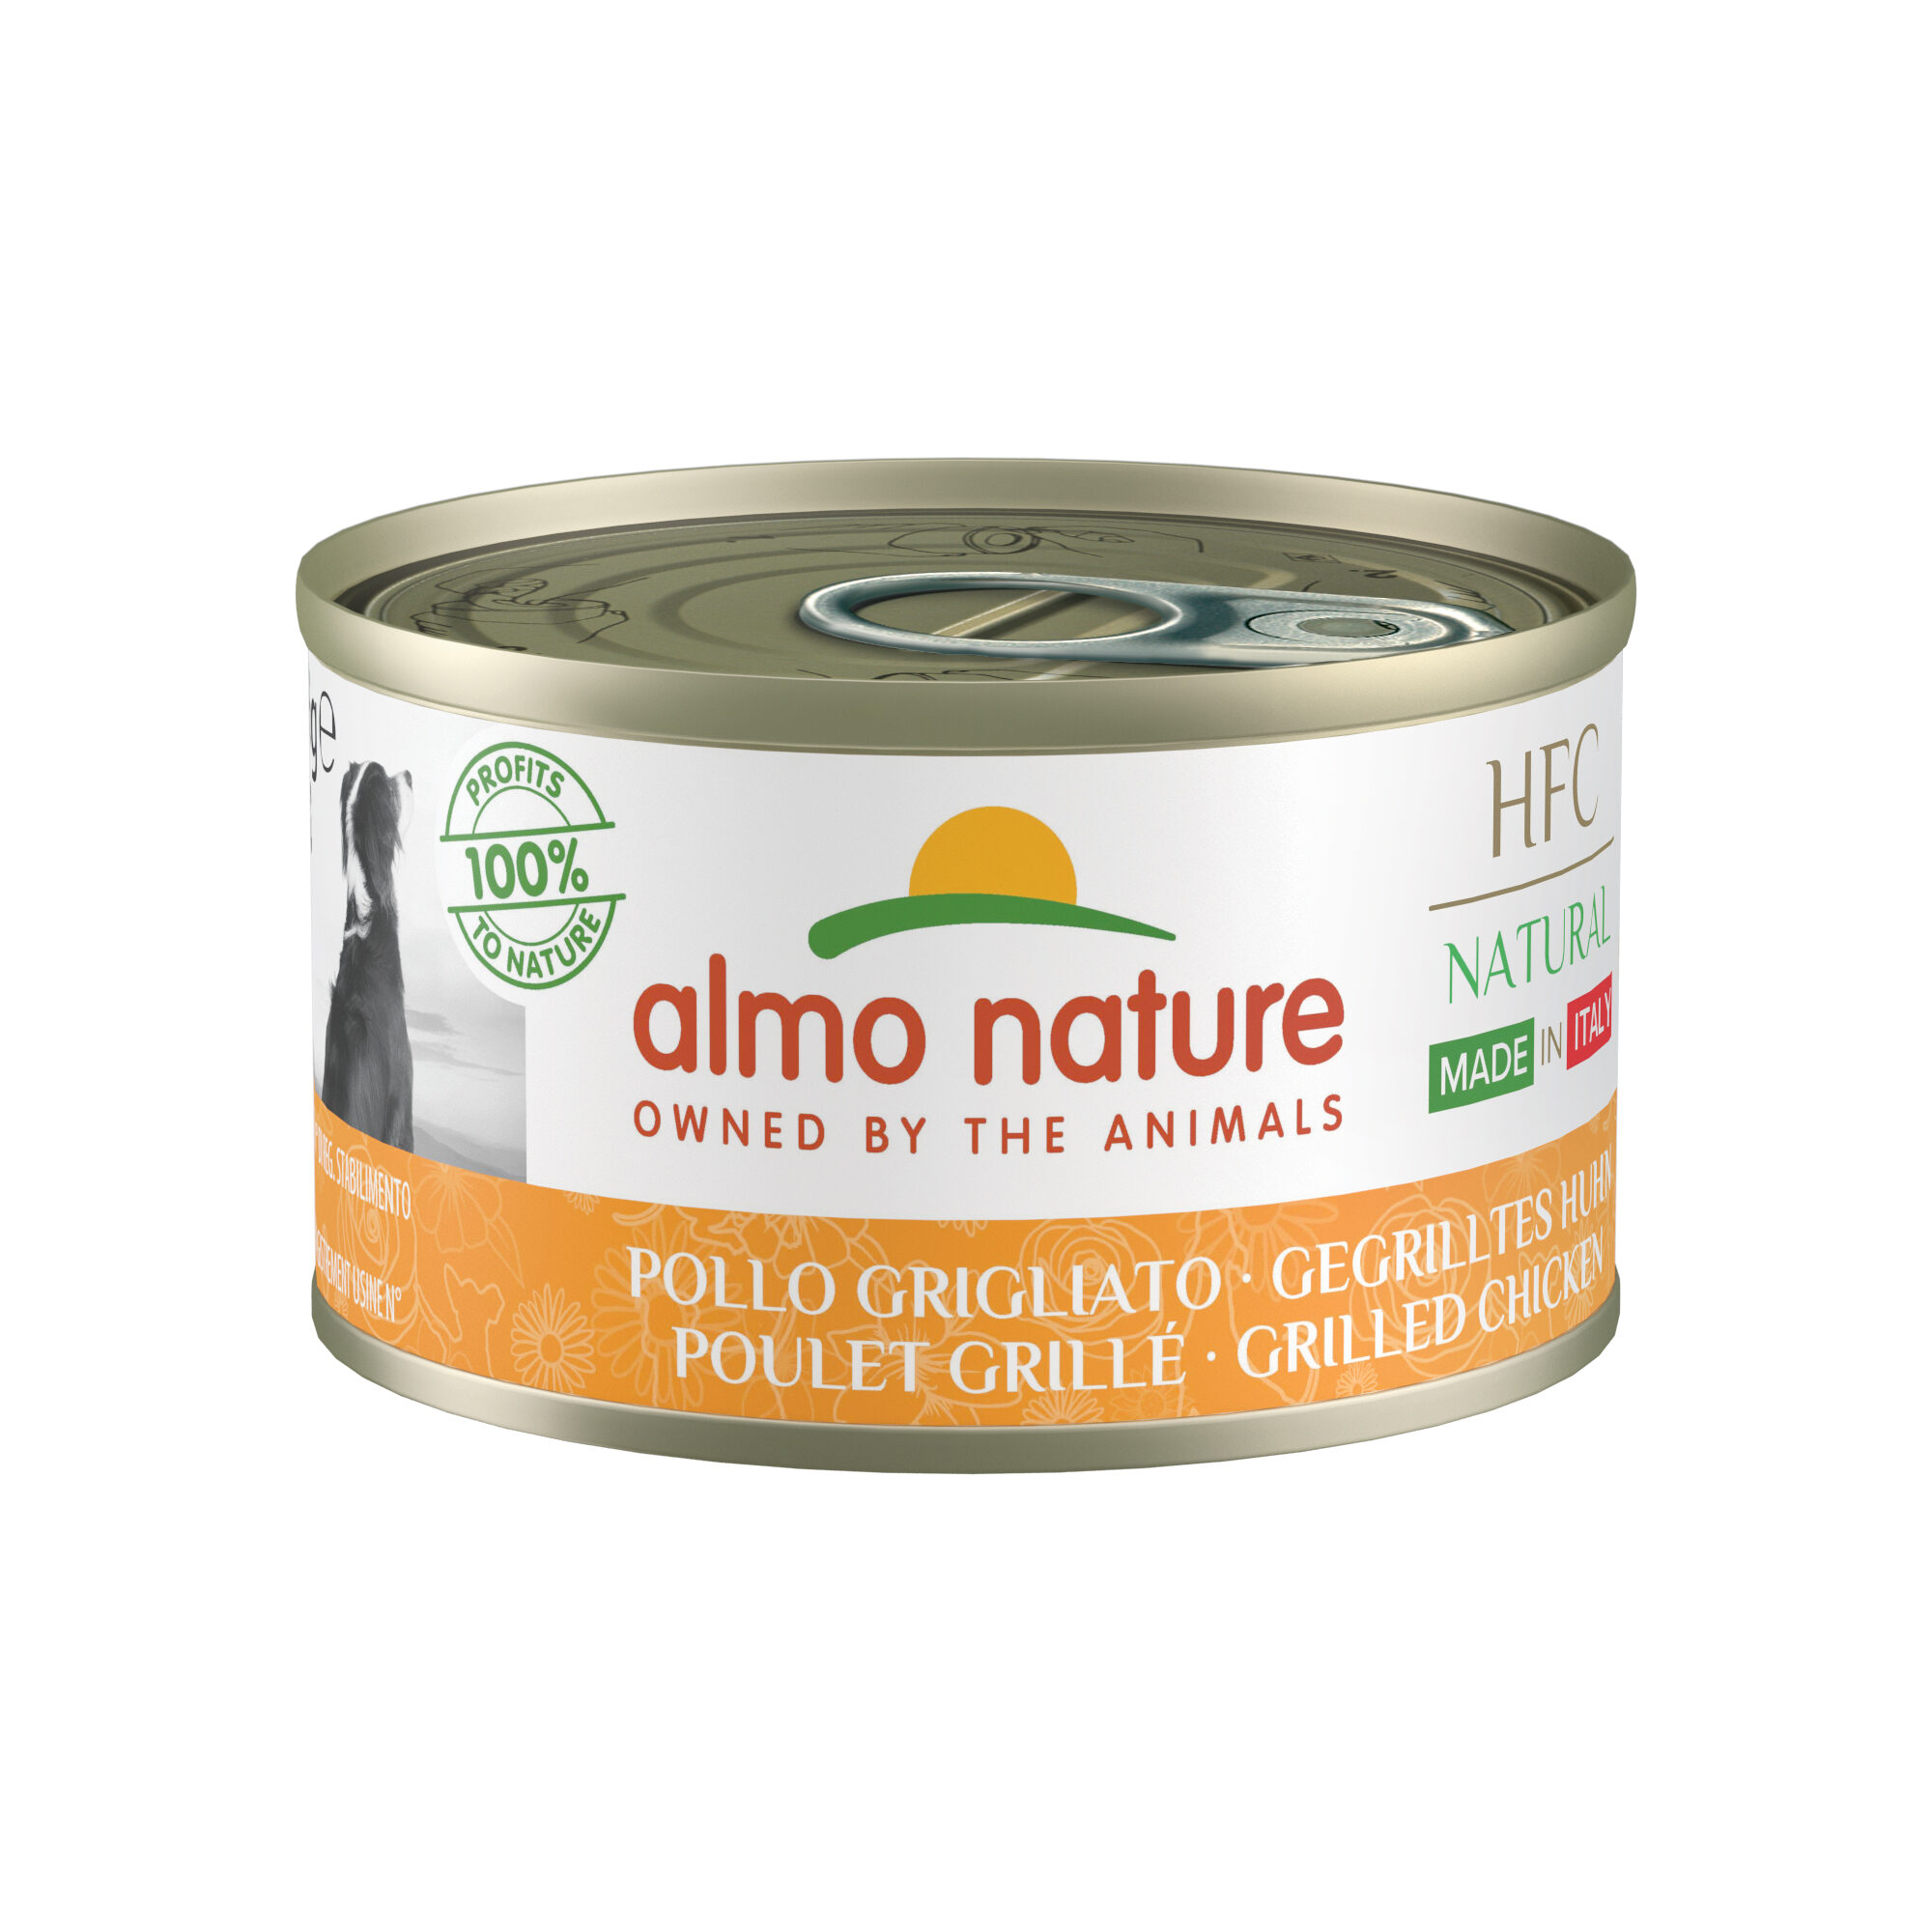 Almo Nature HFC Natural Made in Italy Hundefutter - gegrilltes Huhn